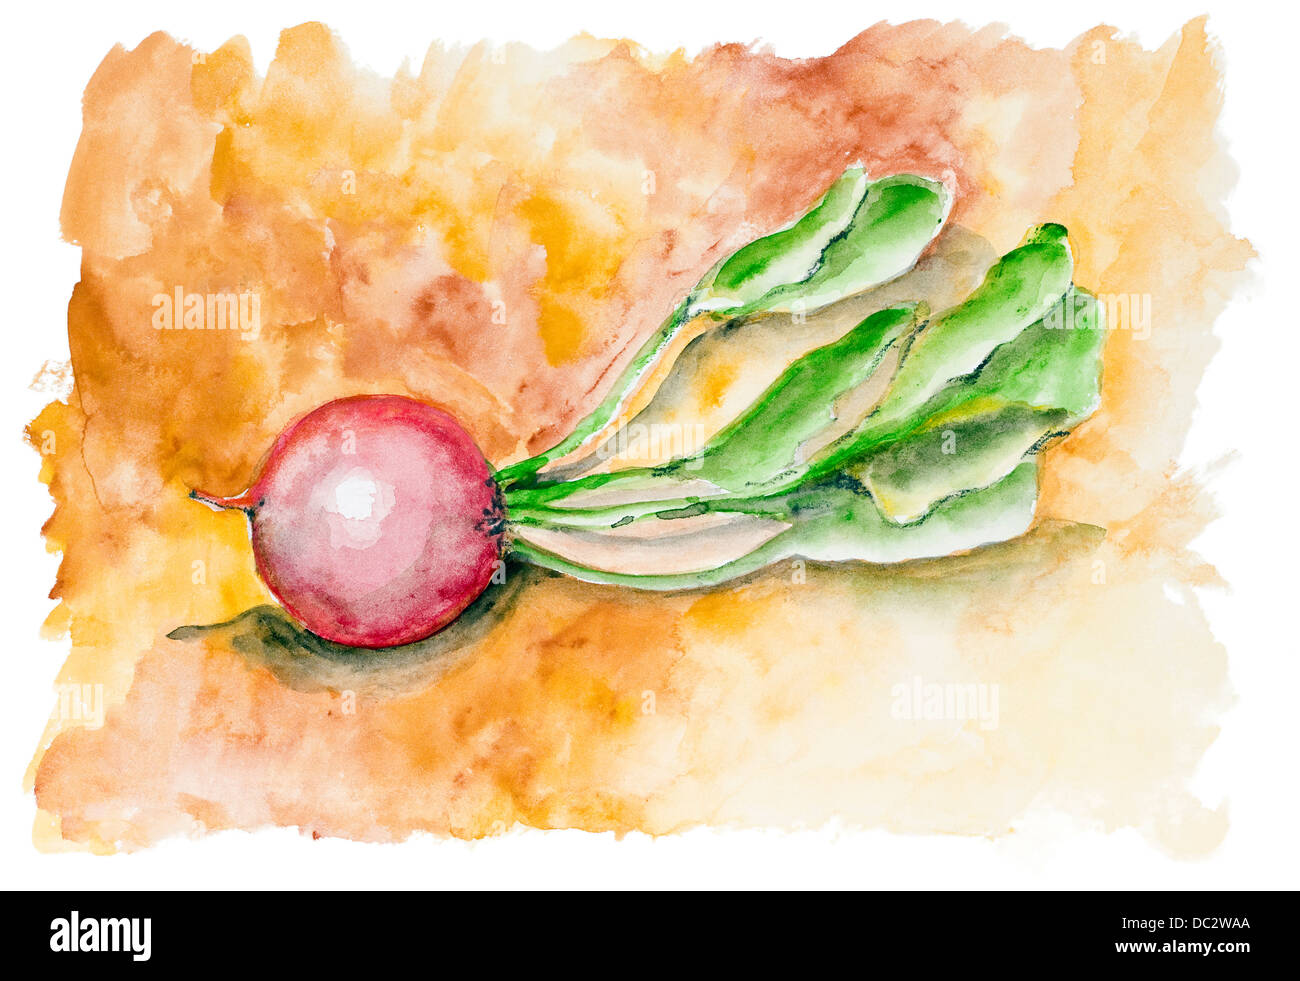 Red beet root on fire isolated. Handmade watercolor painting illustration on a white paper art background - Stock Image